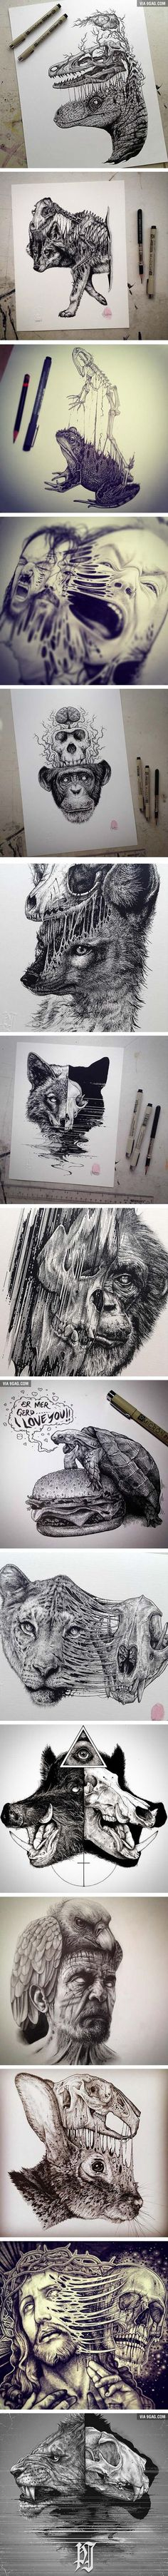 Animals Leave Their Skeletons Behind In These Stunning Dark Drawings (By Paul Jackson):